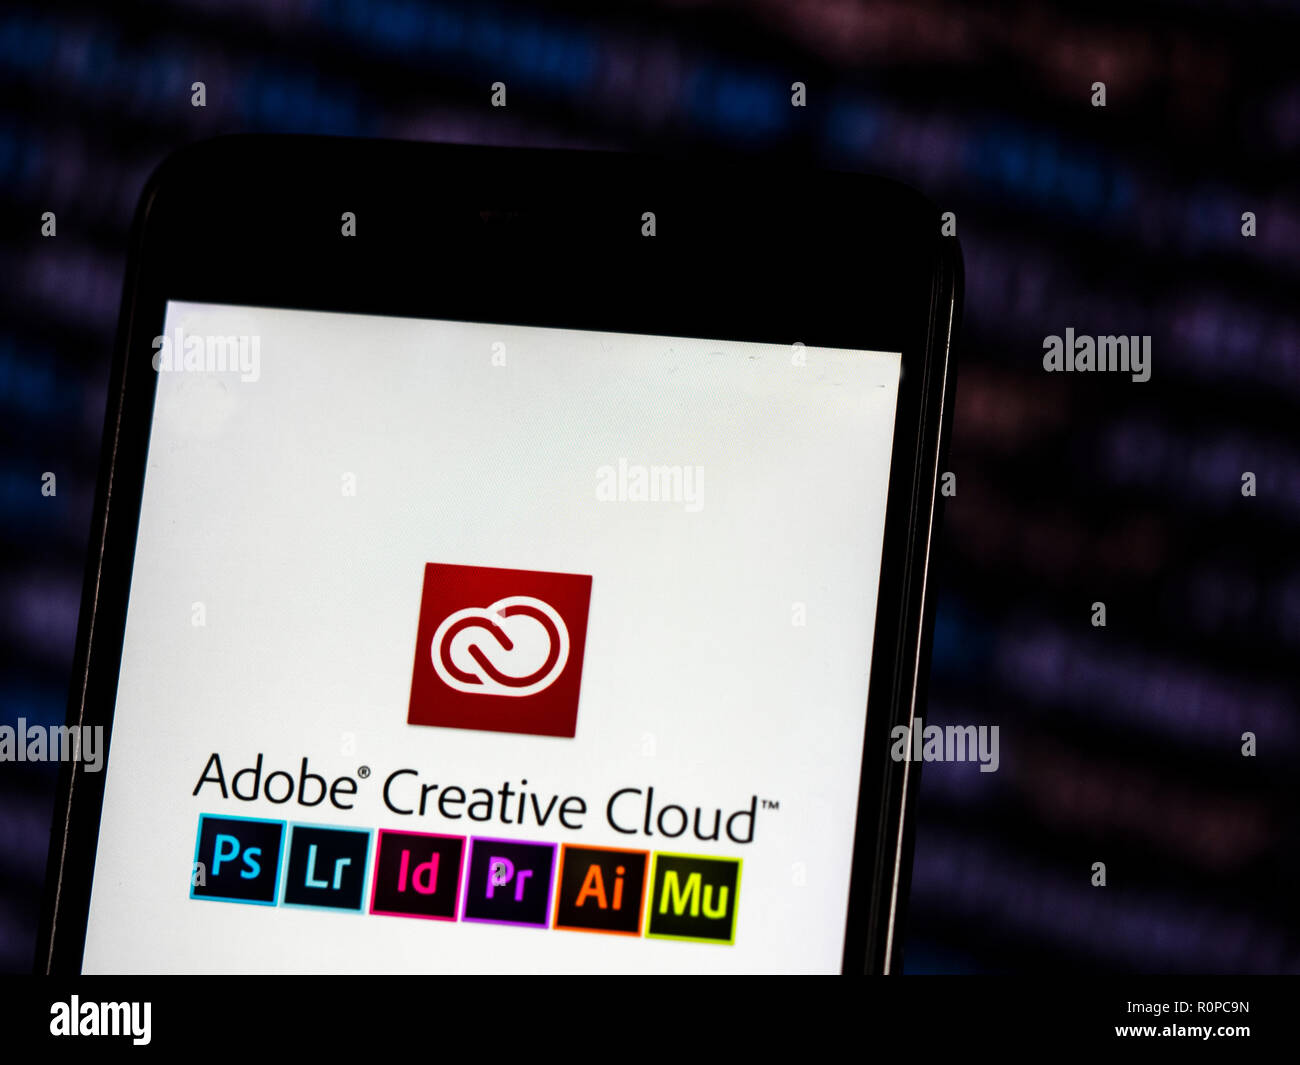 Adobe Creative Cloud Logo Seen Displayed On Smart Phone Adobe Creative Cloud Is A Set Of Applications And Services From Adobe Systems That Gives Subscribers Access To A Collection Of Software Used